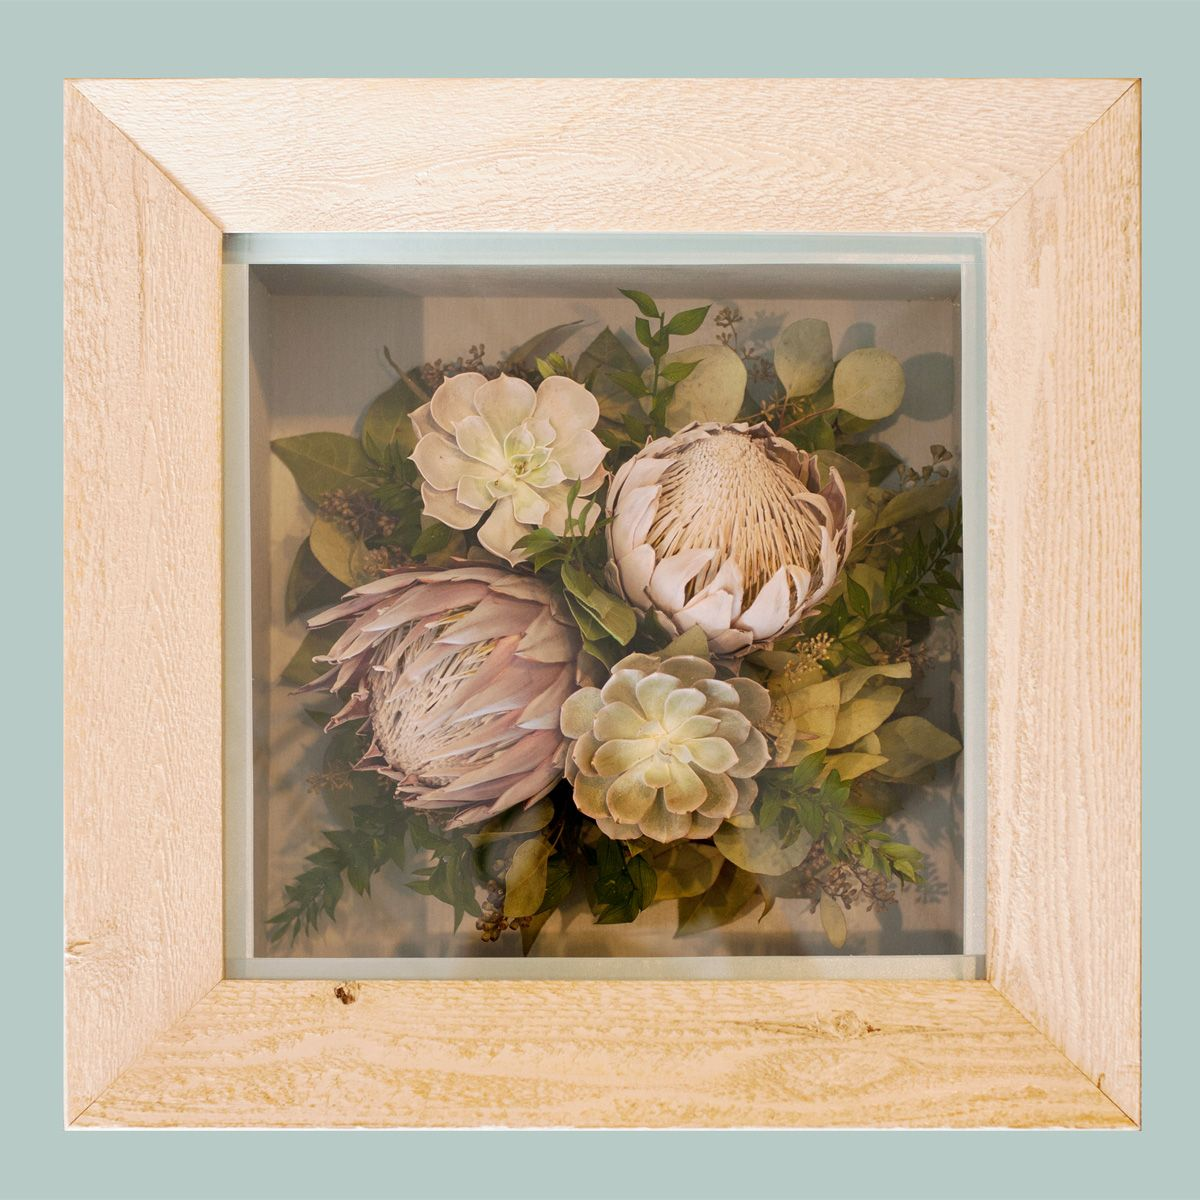 Preserved bridal bouquet in a rustic handmade shadow box